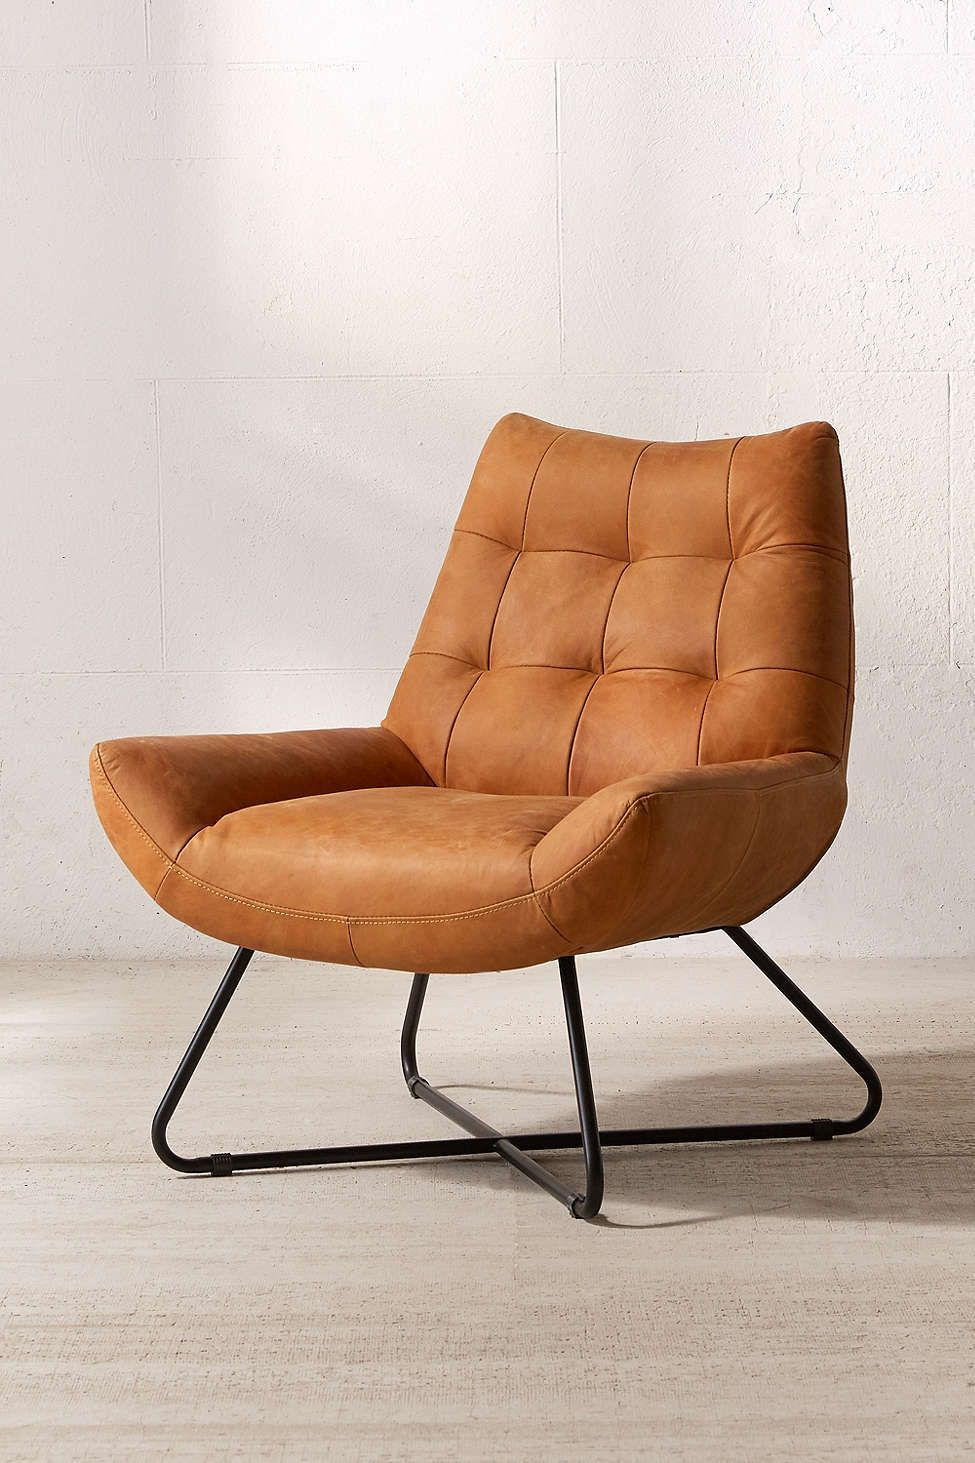 Fauteuil De Bureau but Nouveau Modern but Fy Leather Lounger Chair Urban Outfitters